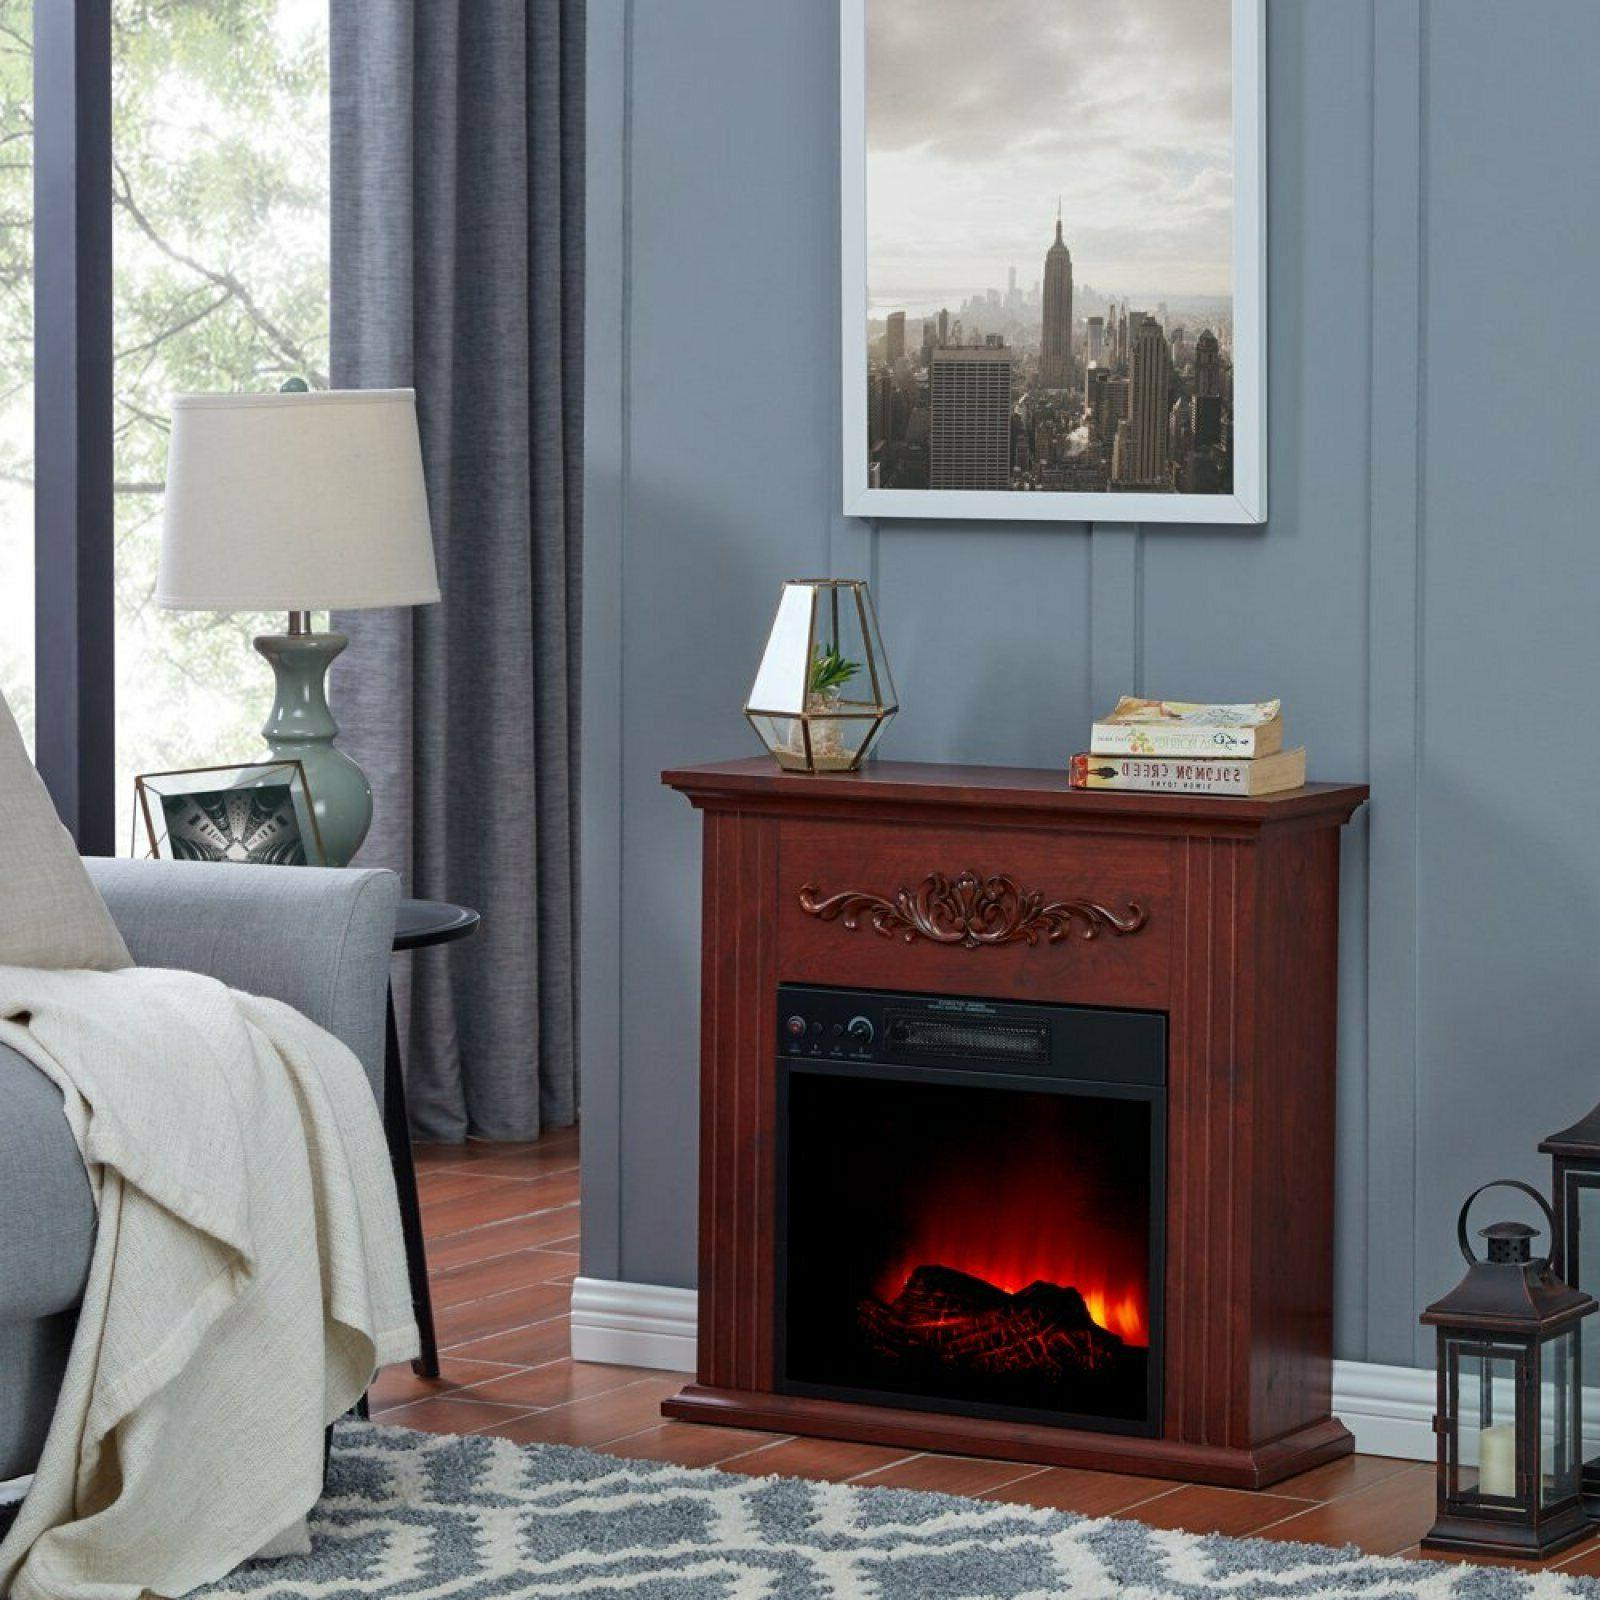 fireplace electric space heater w remote led